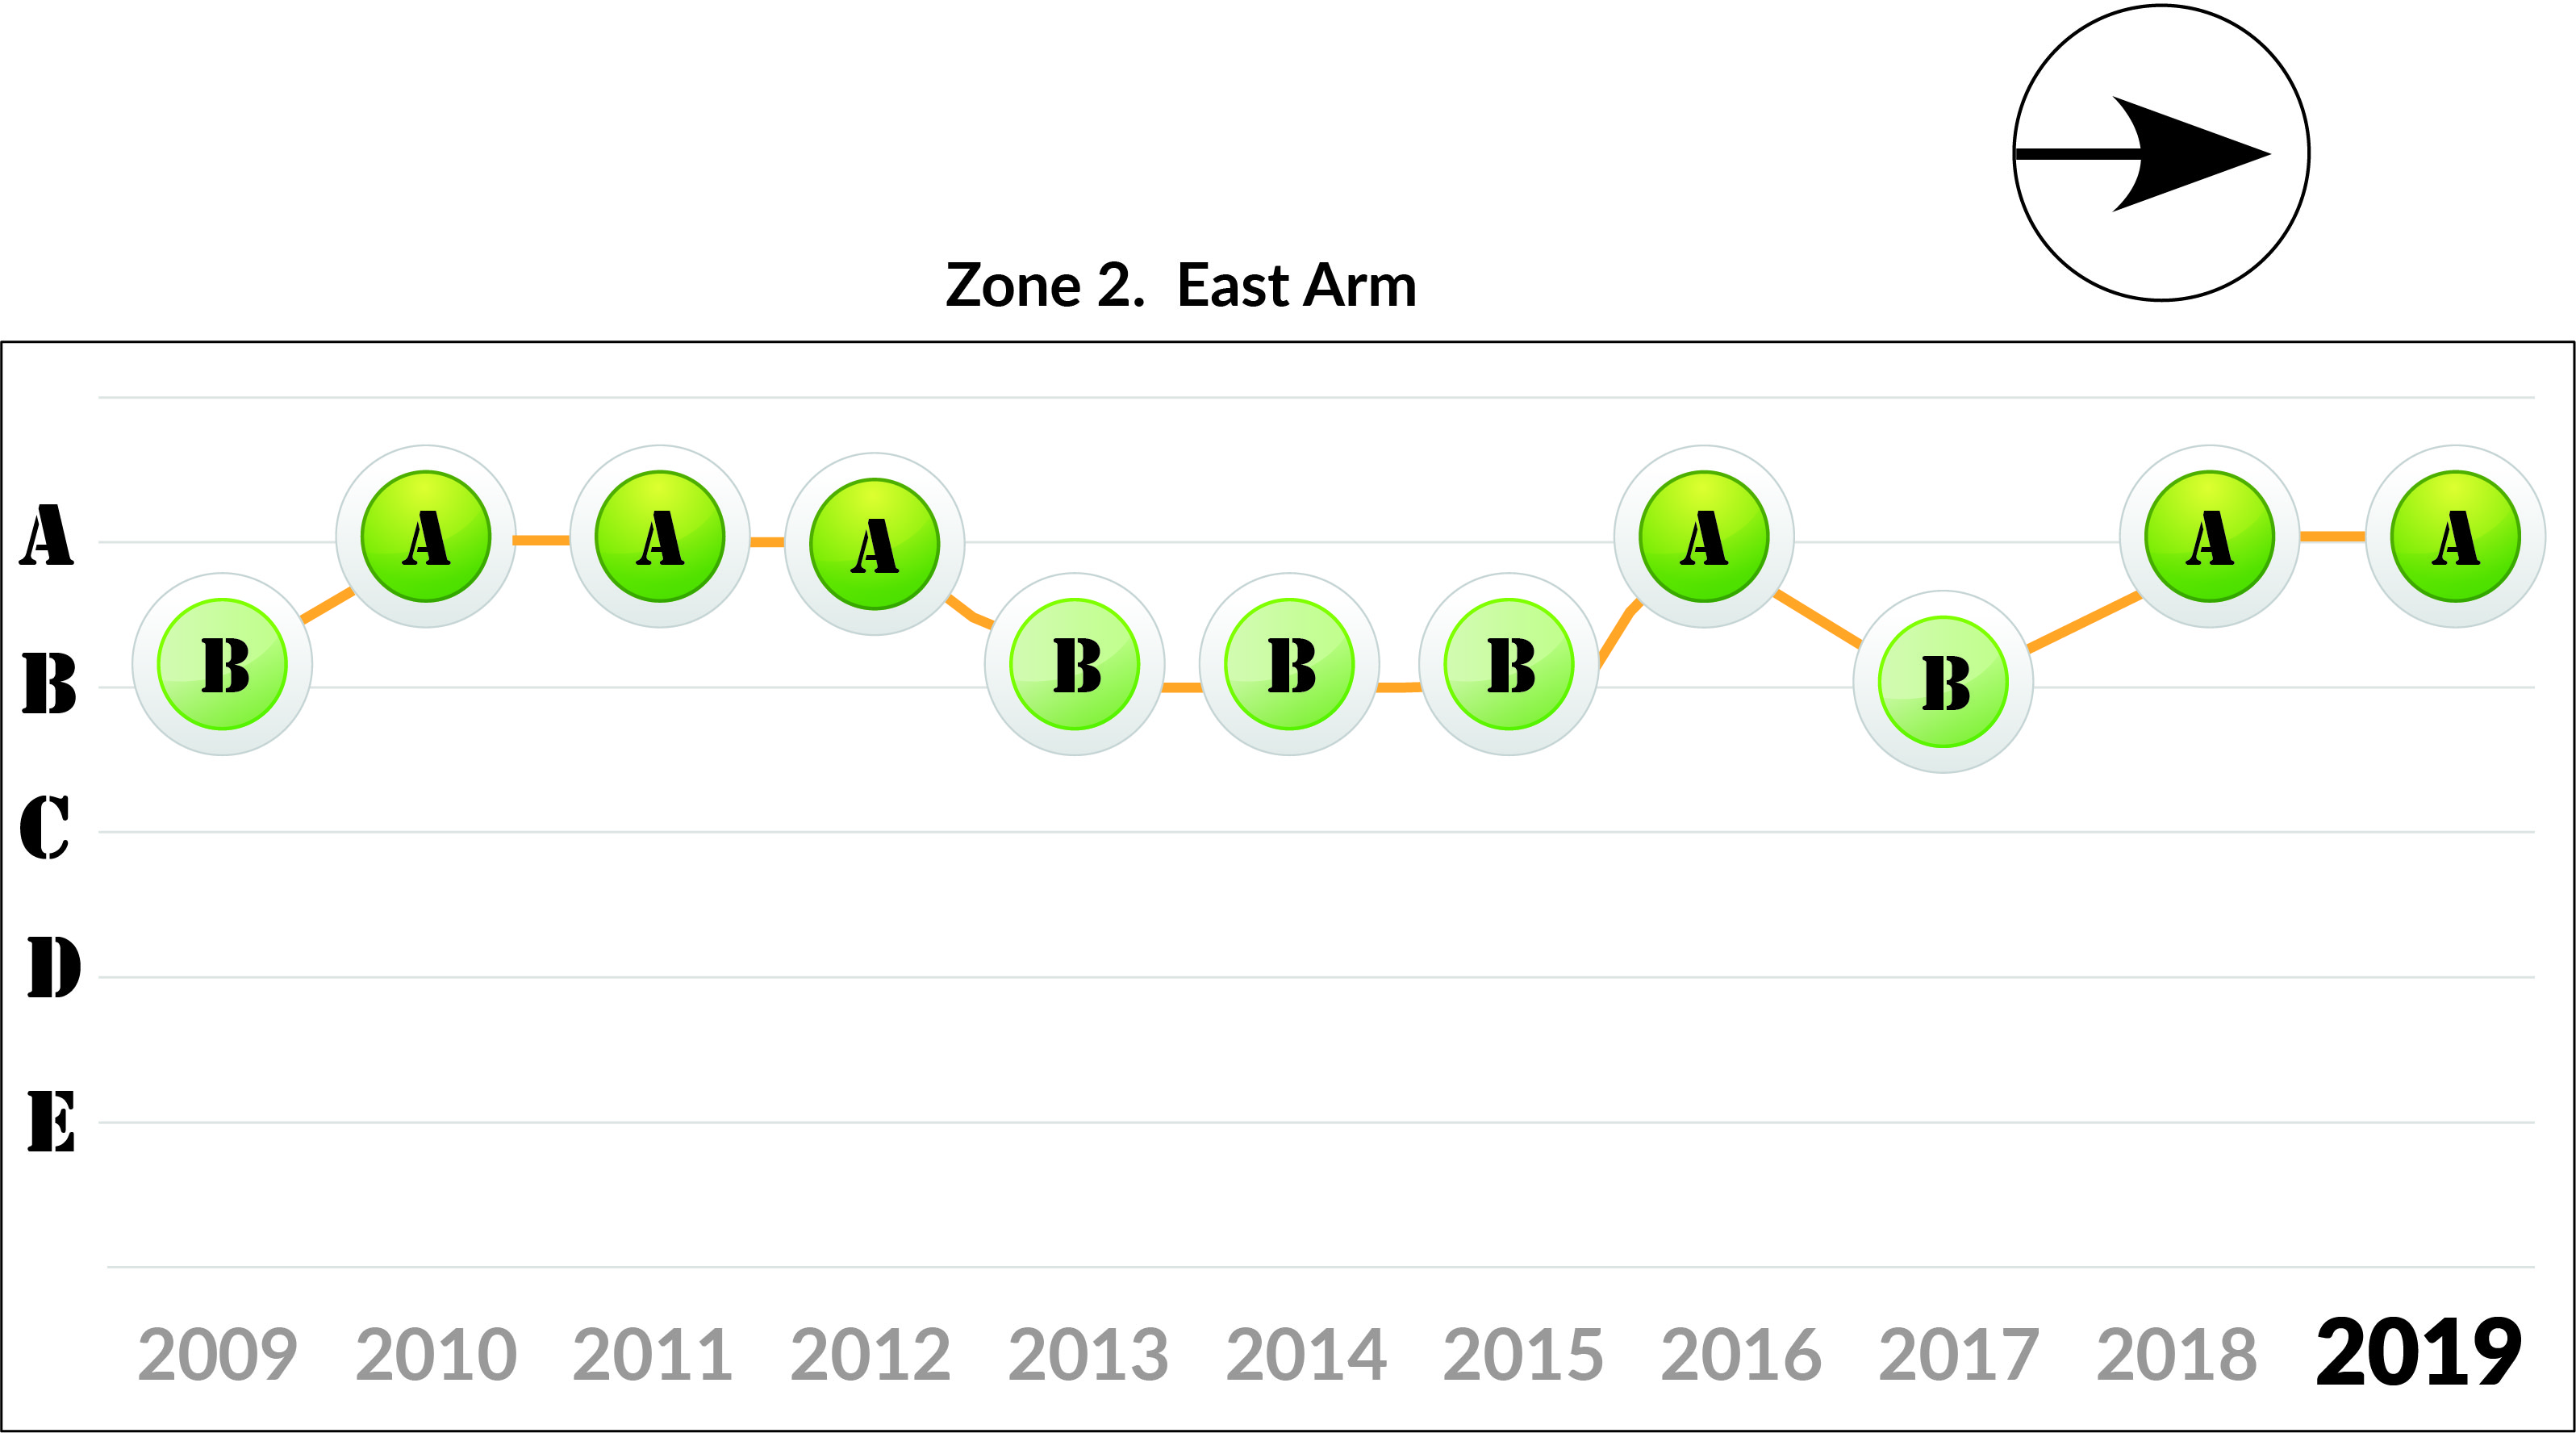 Zone 2 East Arm trends